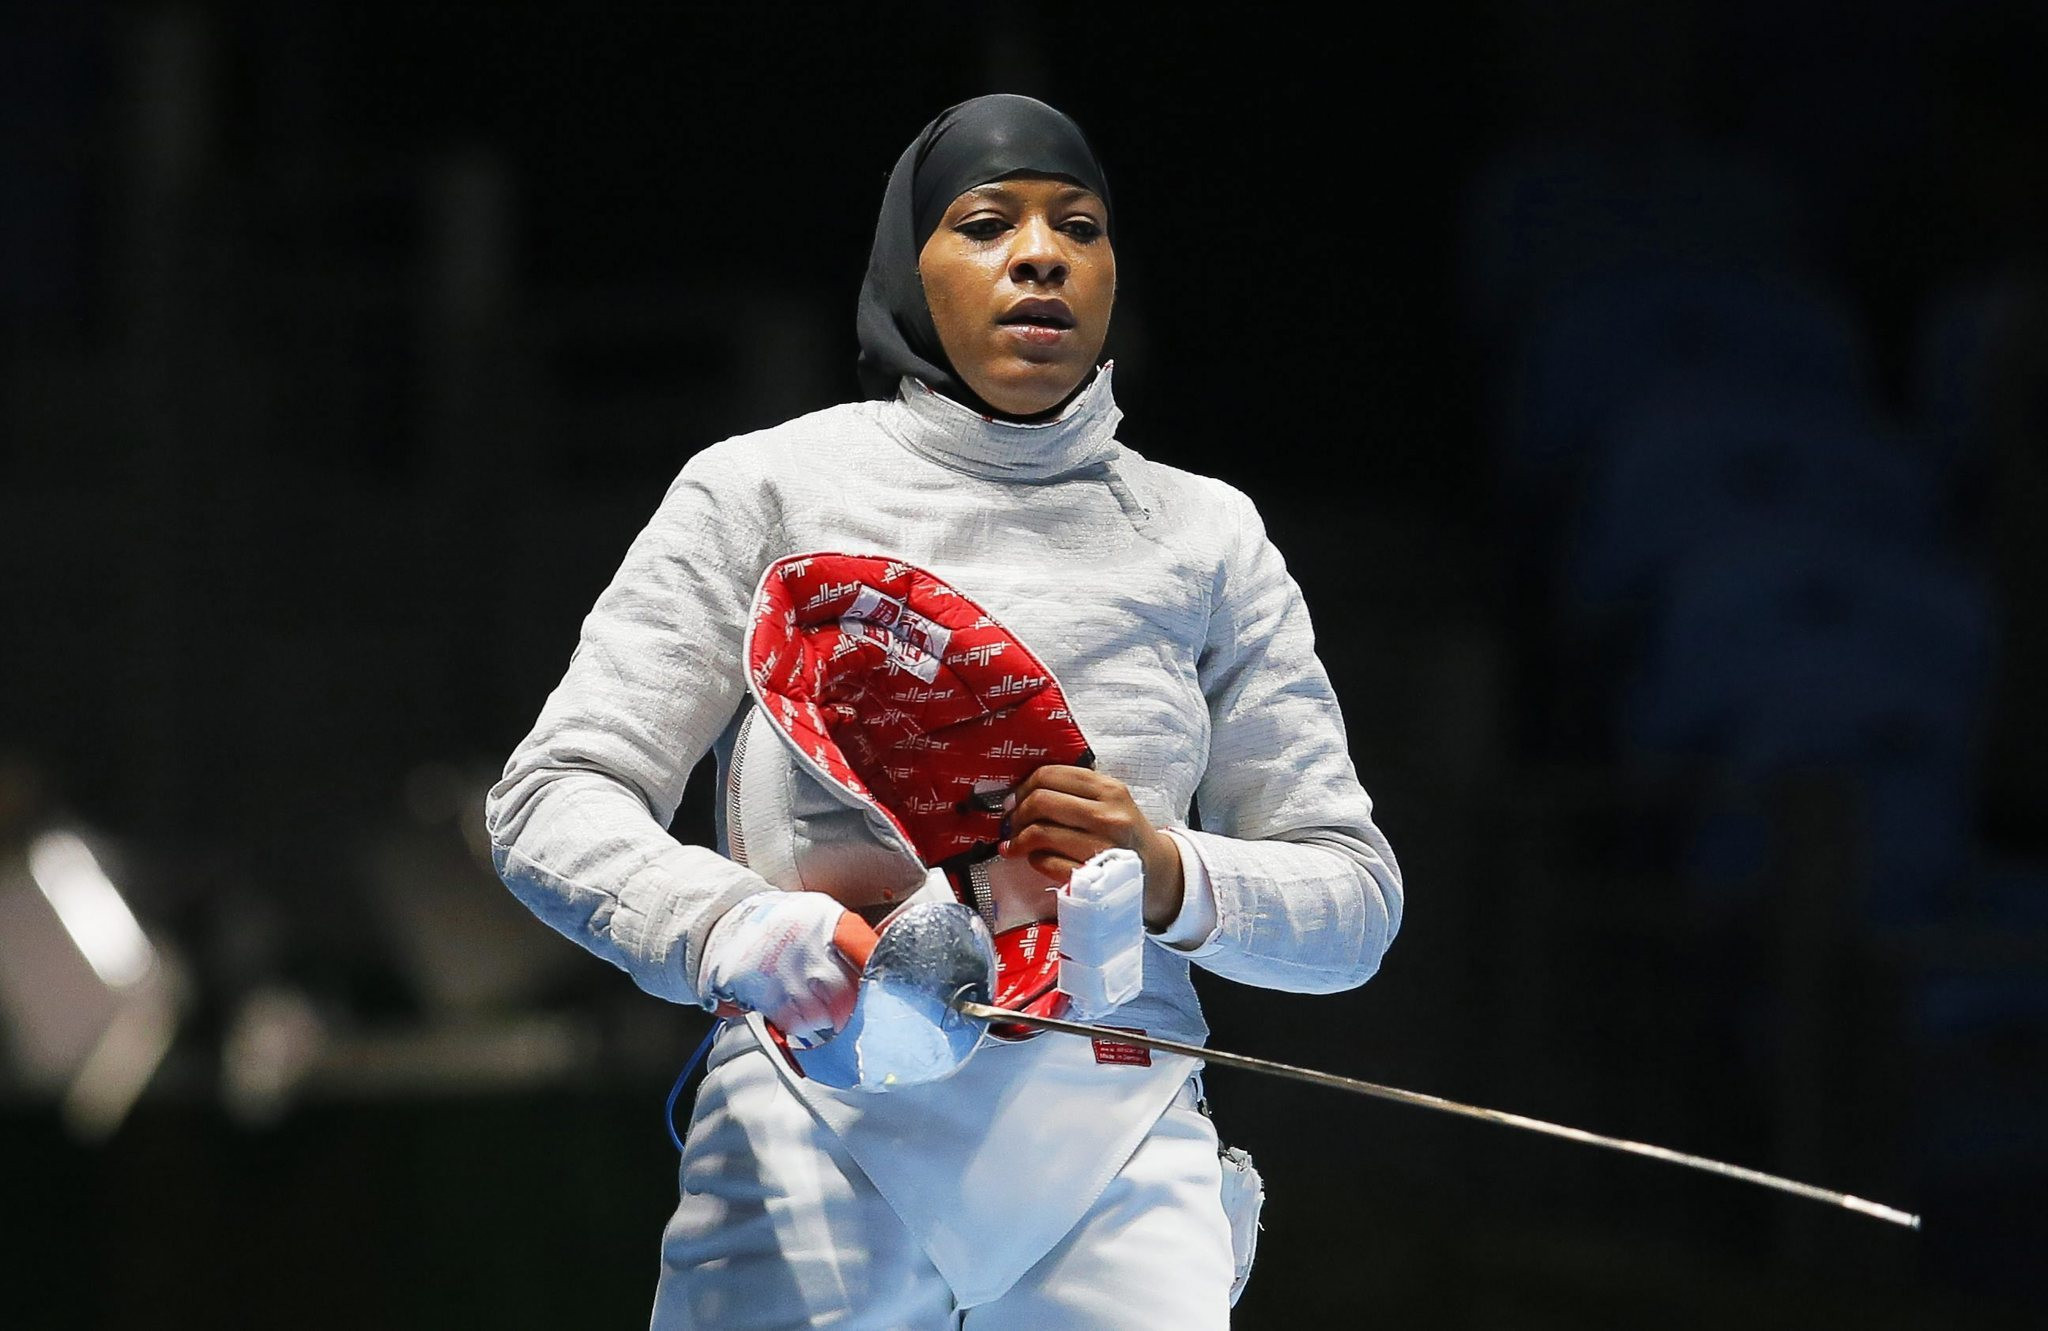 American fencer Ibtihaj Muhammad competed for the United States at the 2016 Olympic Games in Rio de Janeiro while wearing a hijab, something several other Muslim women in the future are set to follow ©Getty Images